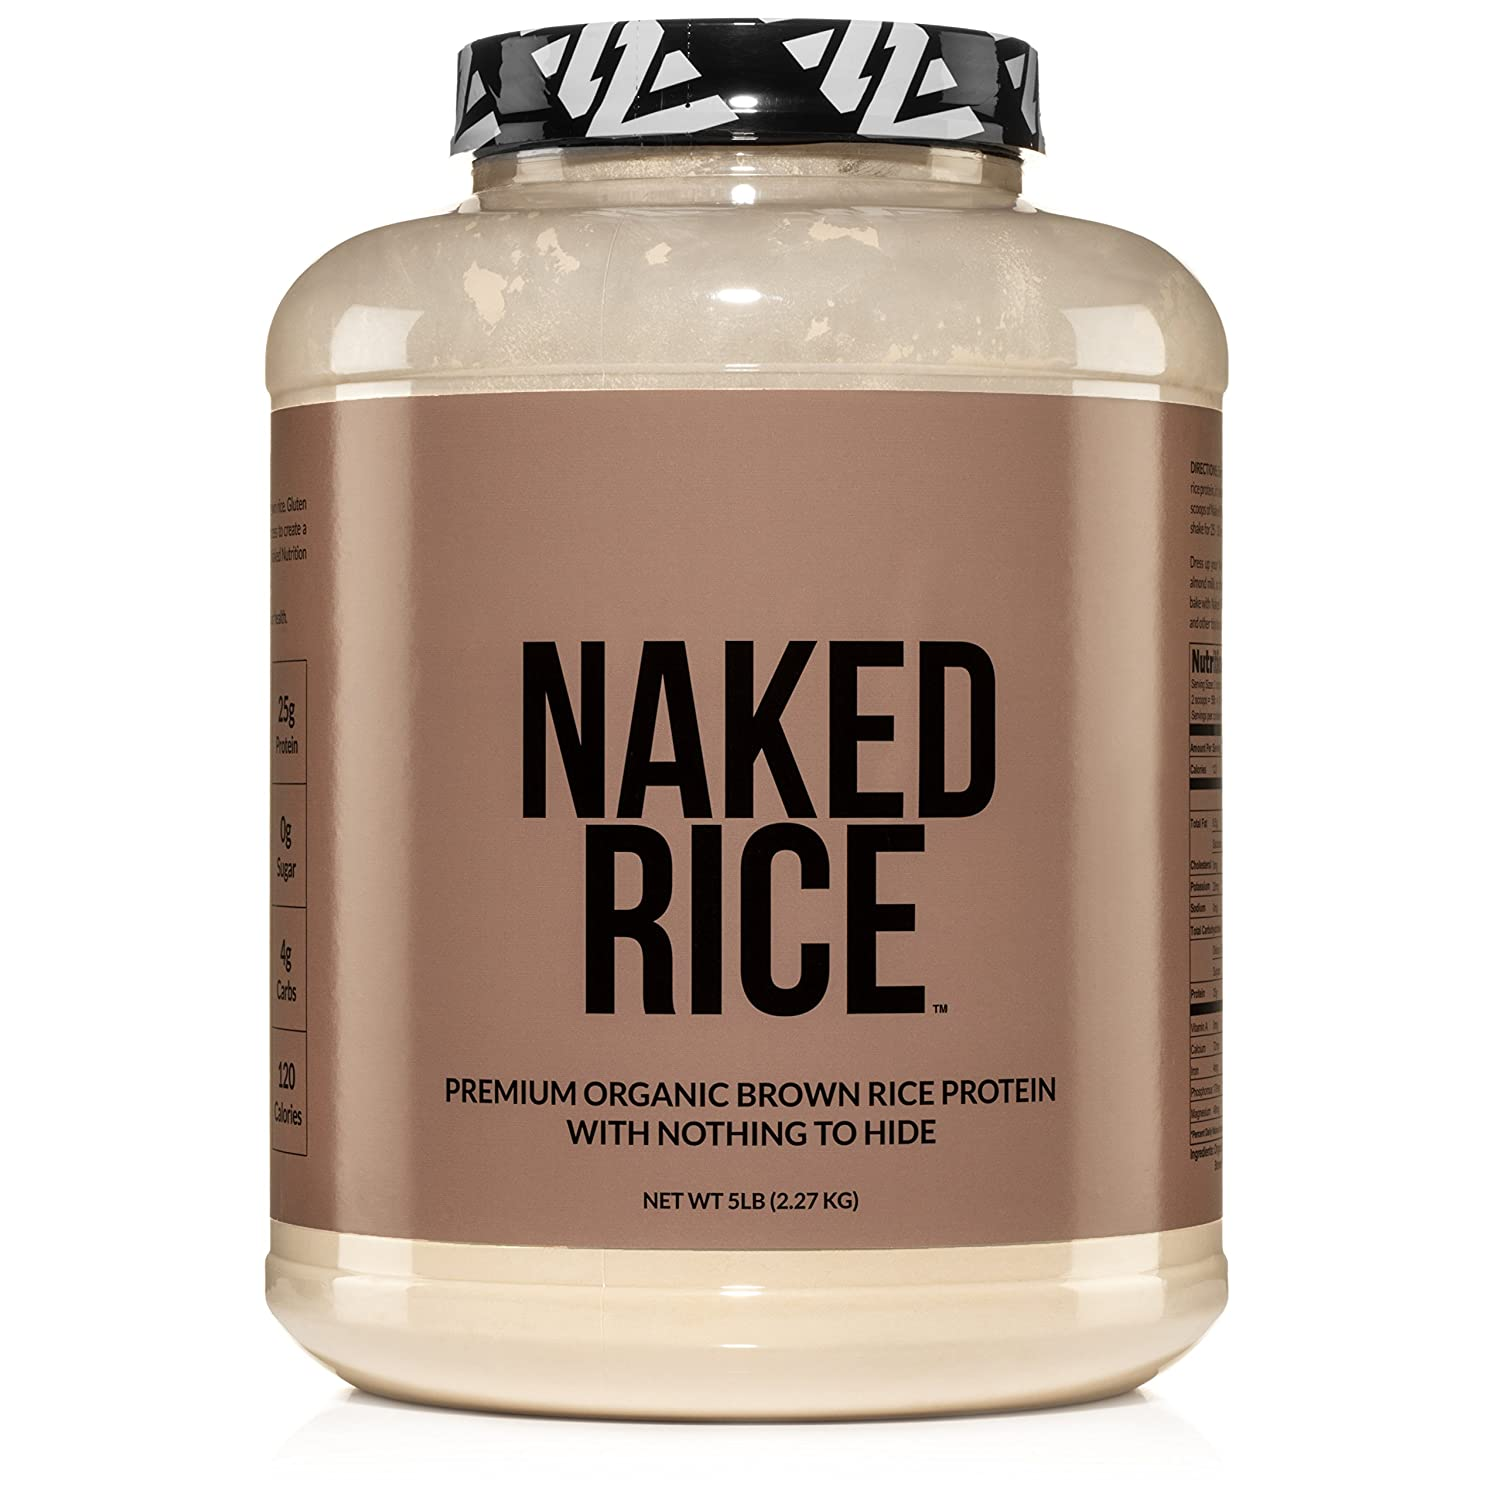 Amazon.com: NAKED RICE - Organic Brown Rice Protein Powder – Vegan ...